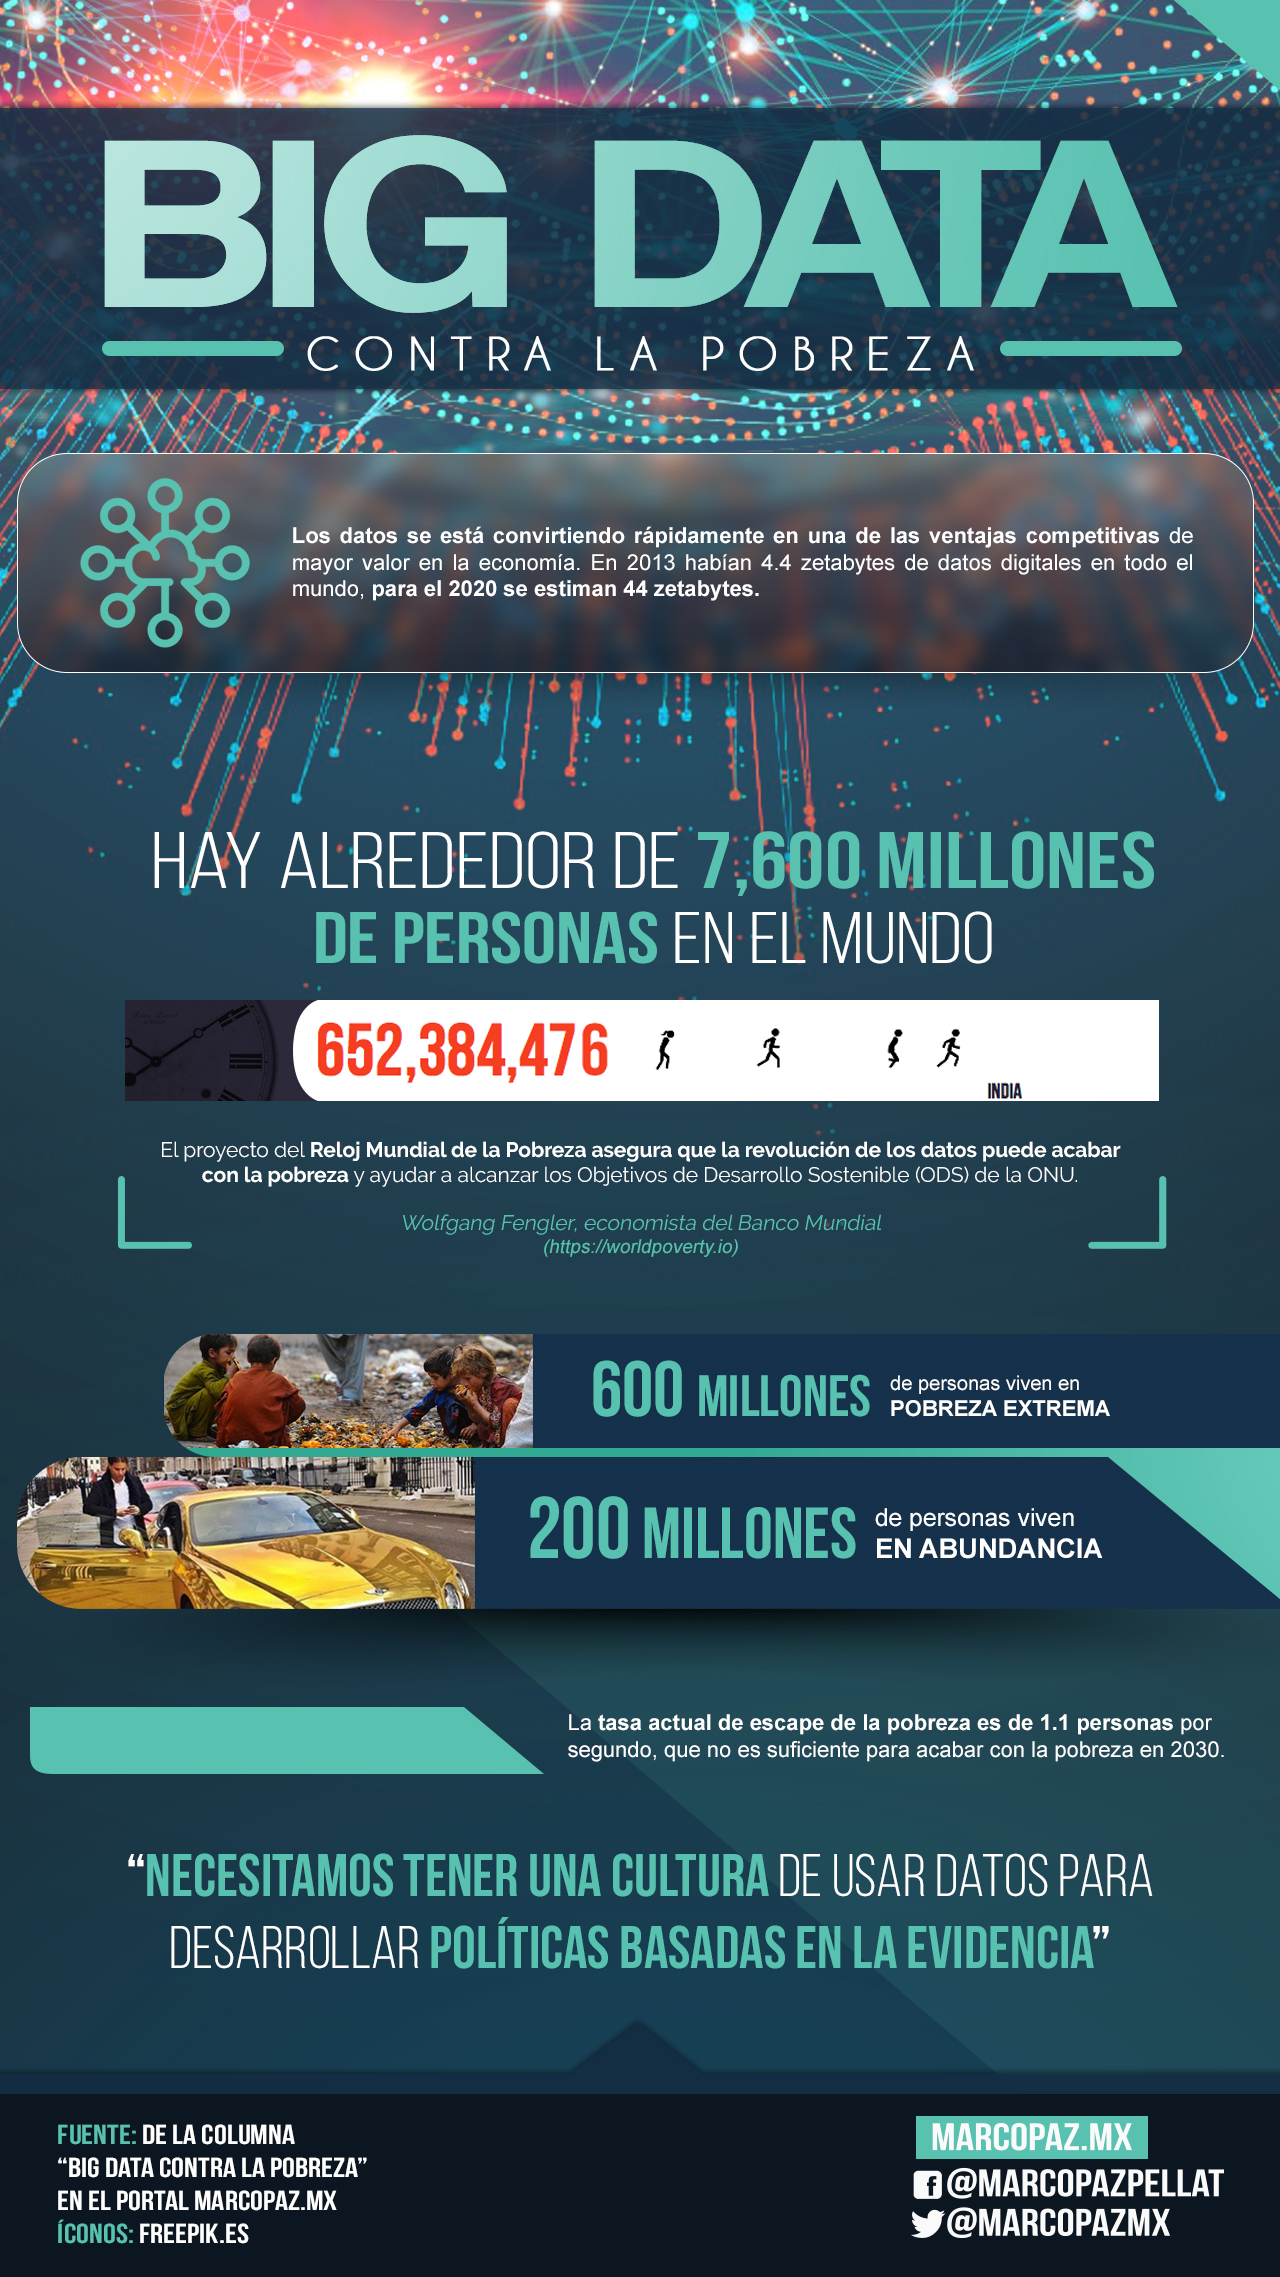 66_INFOGRAFIA_Big data contra la pobreza copy